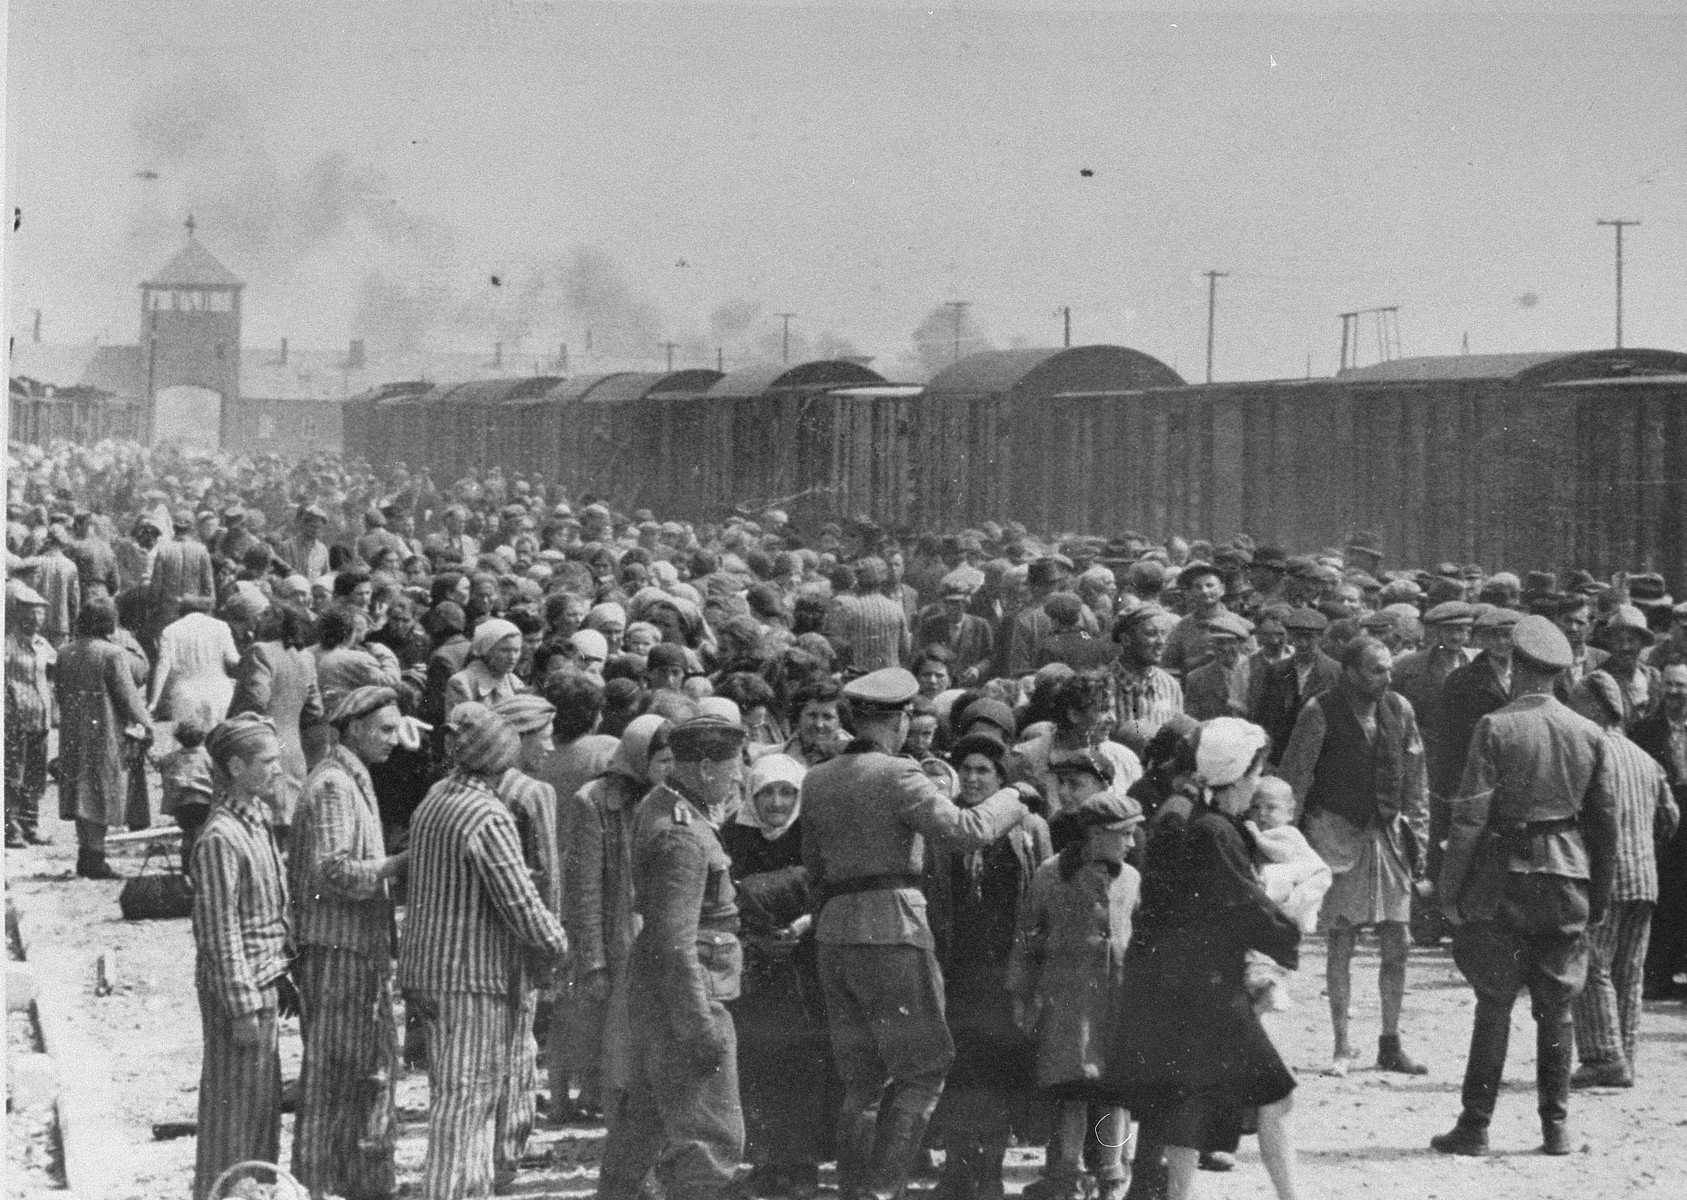 Jews from Subcarpathian Rus undergo a selection on the ramp at Auschwitz-Birkenau.  Pictured in front right is either SS Unterscharfuehrer Wilhelm Emmerich or SS Haupsturmfuehrer Georg Hoecker assisted by the Jewish prisoner Hans Schorr.  Also pictured in the front, second from the front is Jakob de Hond from Holland [also identified as Szlomo Glogower from Makow, Poland] and Yap Van-Gelder, far left [also identified as Shlomo Pivnik].  The woman next to him as been identified as Rosa Landau from Er-Mihaifalva (Valea-Lui-Mihai).